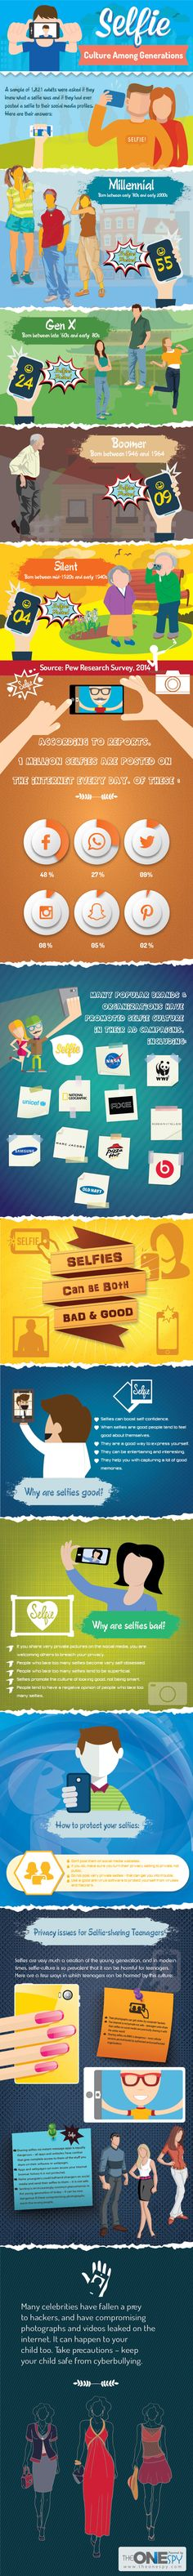 The concept of taking a selfie has been on the rise for quite some time. However in terms of which generation is the most tech savvy when it comes to taking selfies.